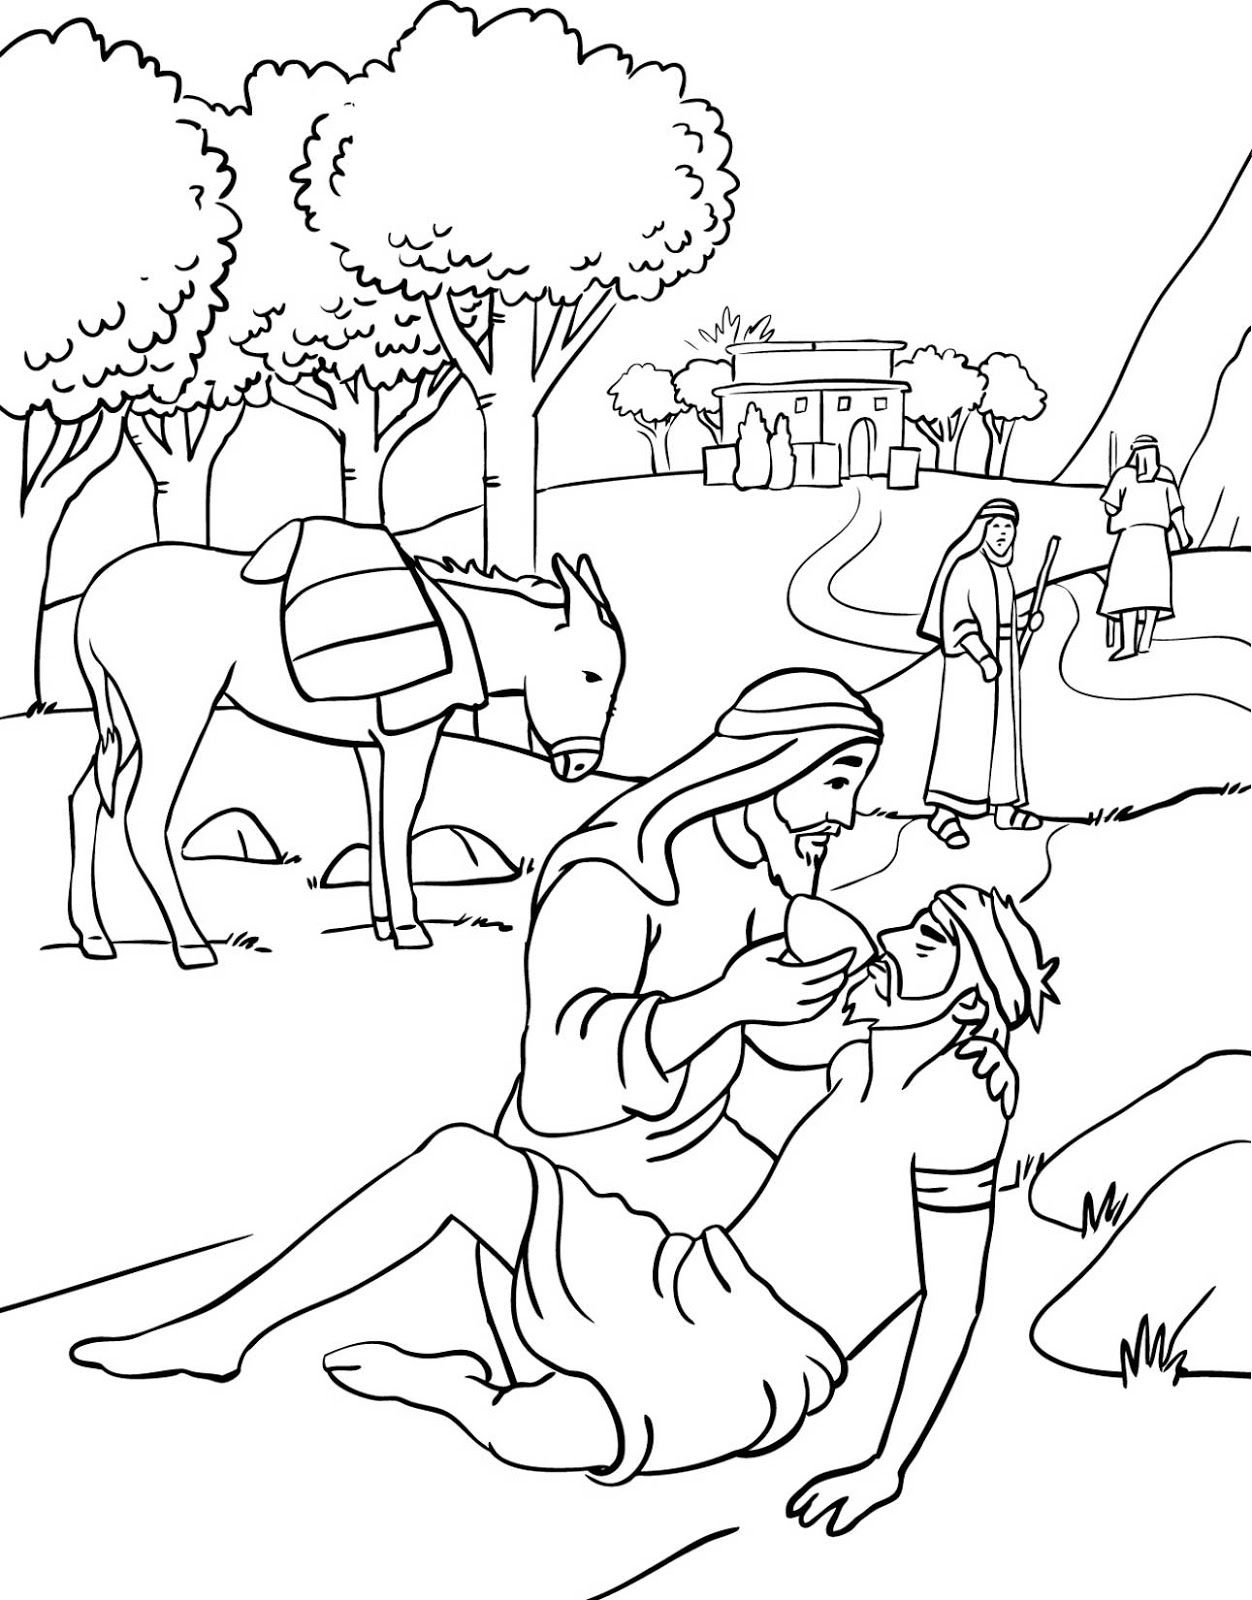 bible story coloring pages bible stories coloring pages pages story bible coloring